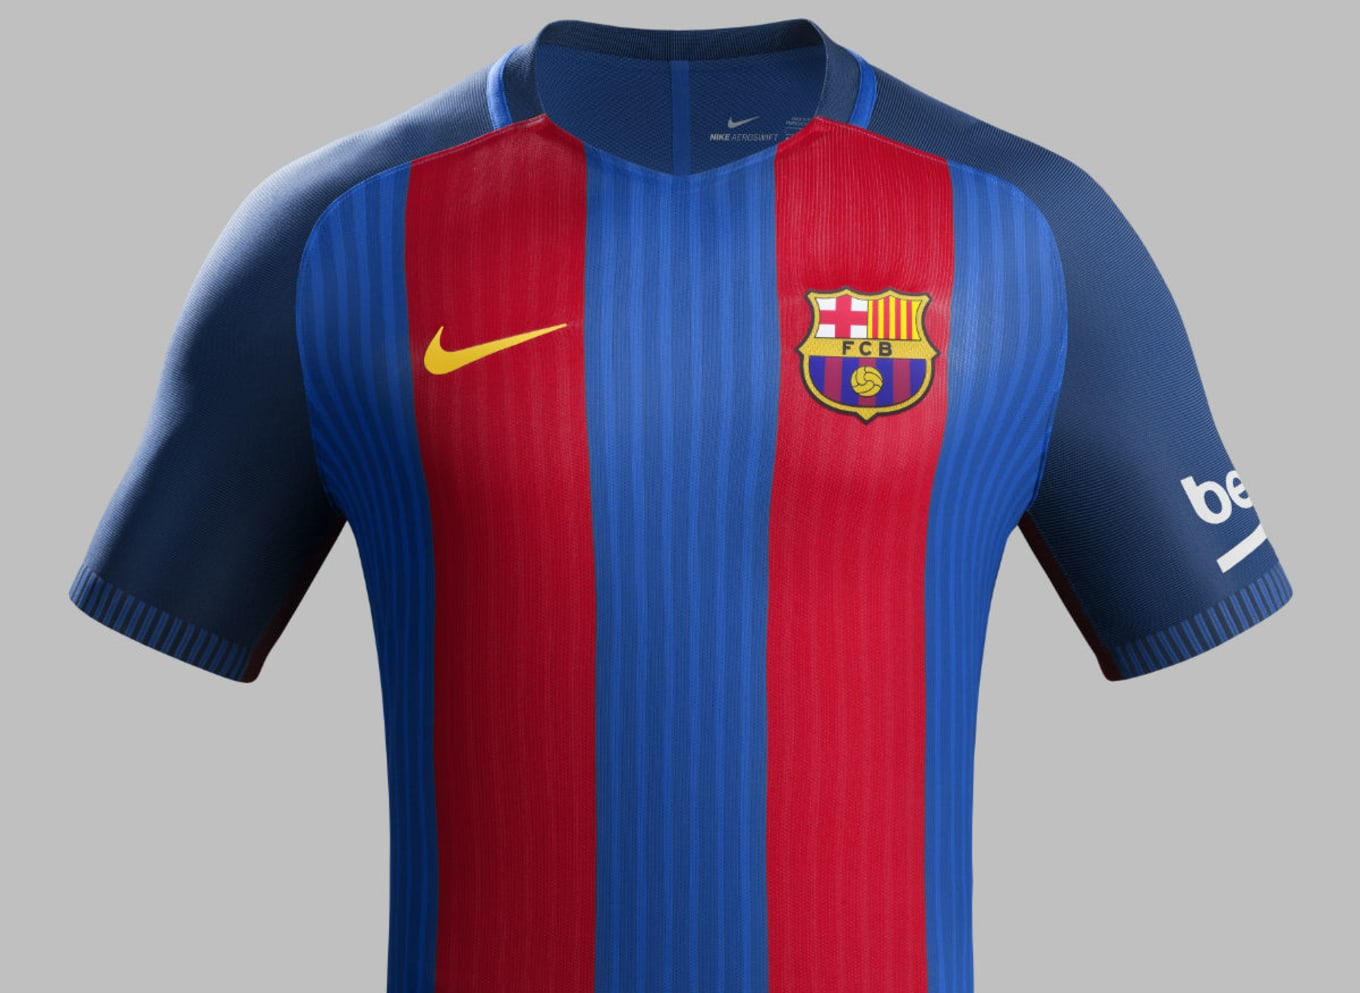 hot sale online 8d3e3 f2d6b Adidas Threatens Nike with Legal Action Over Barcelona's ...